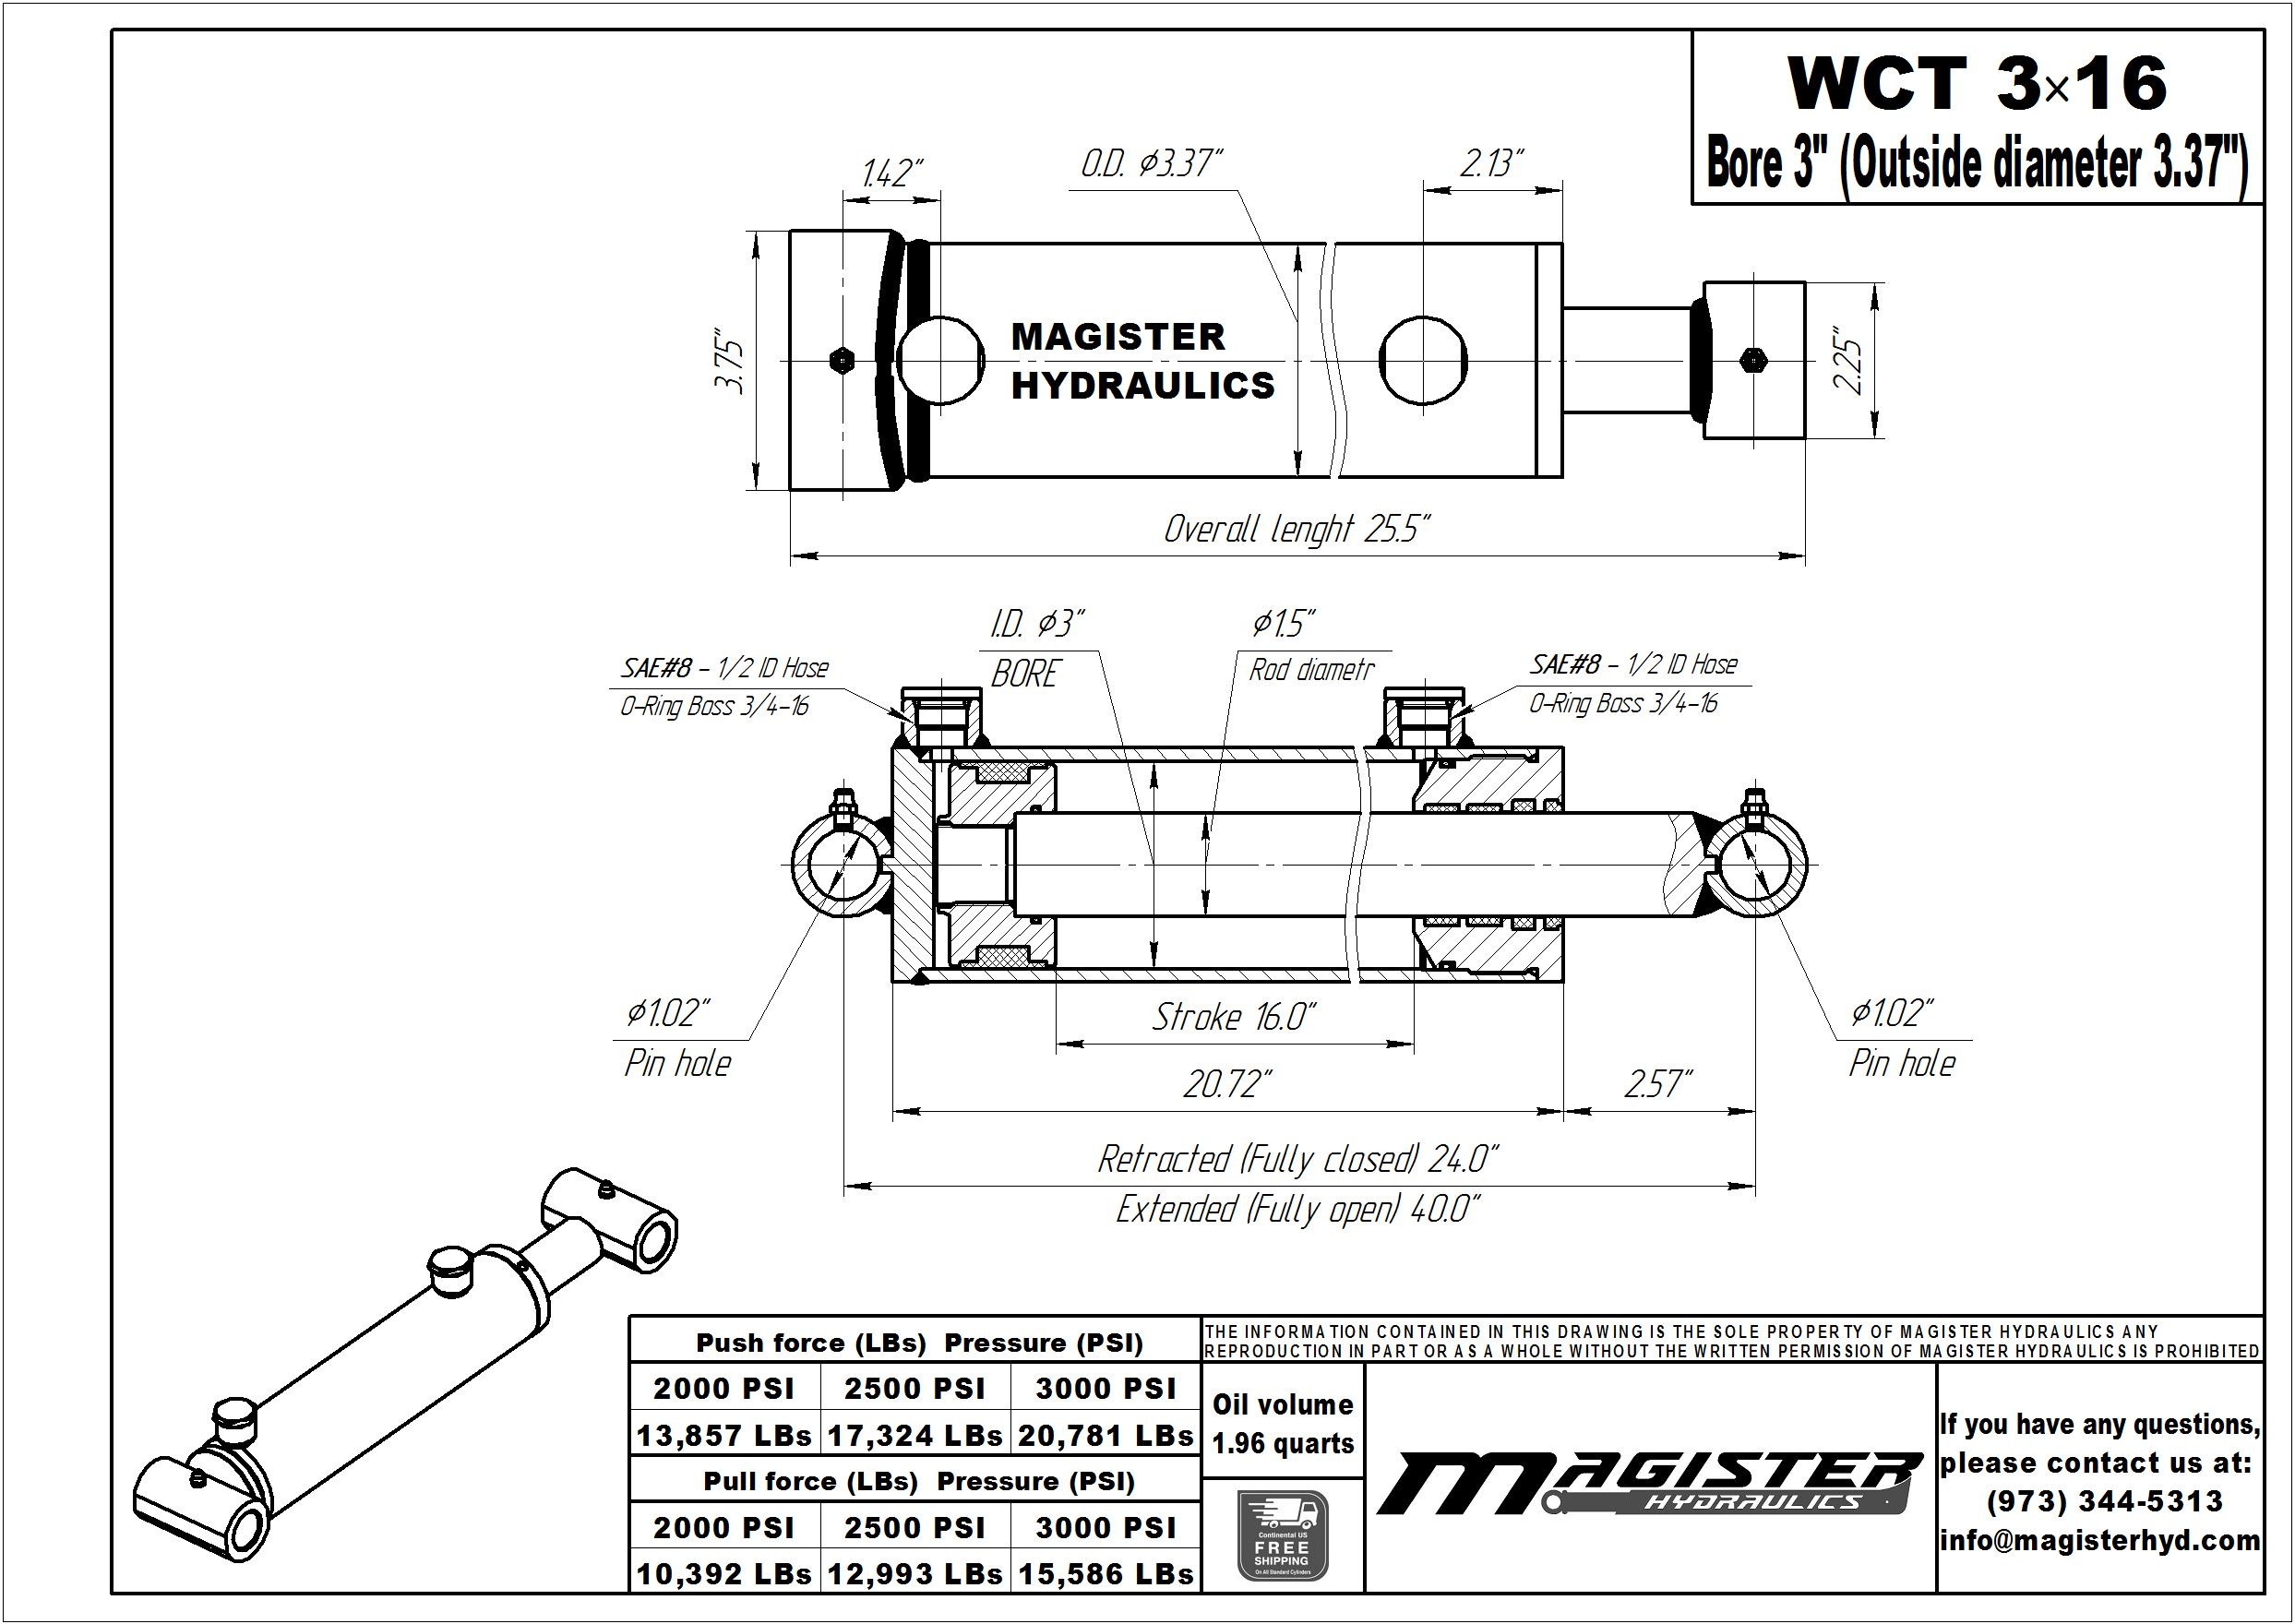 3 bore x 16 stroke hydraulic cylinder, welded cross tube double acting cylinder | Magister Hydraulics